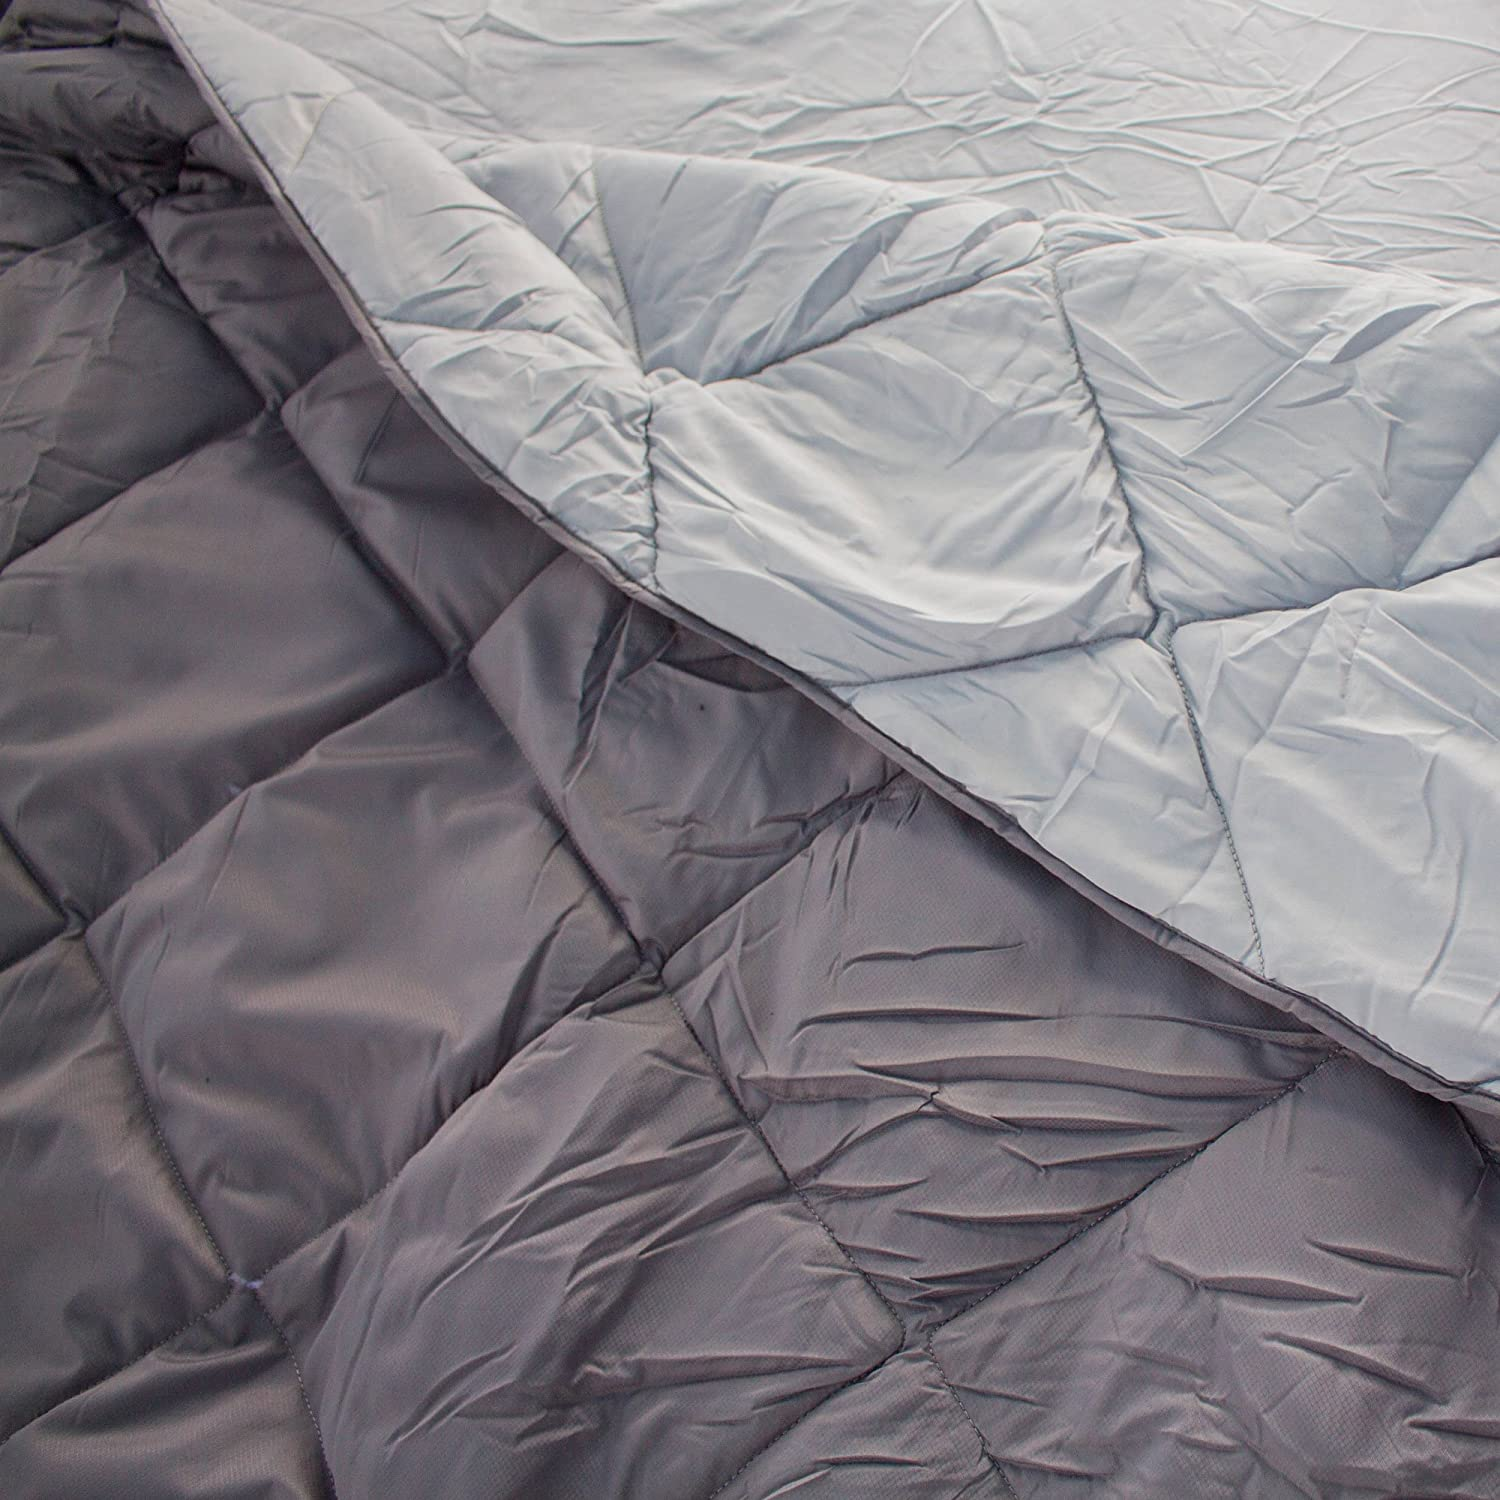 Tahoe Gear Mattress Bed Kit with Quilted Fitted Sheet Cover /& Blanket